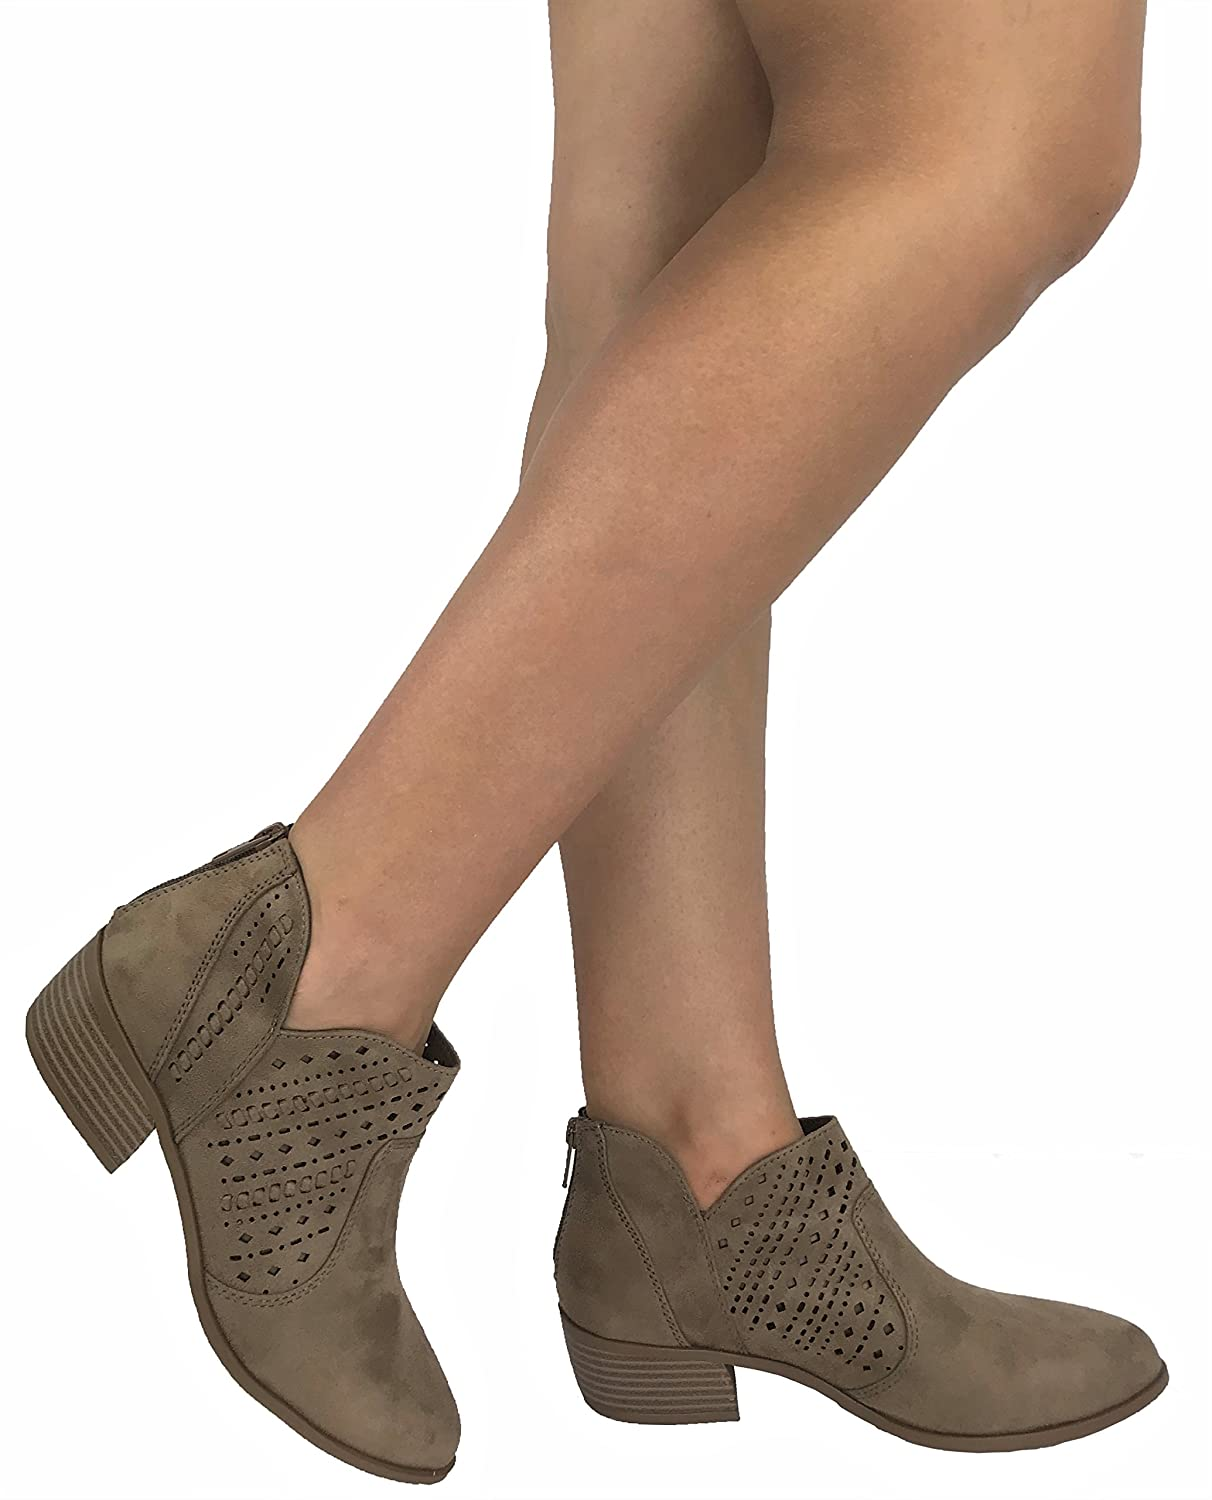 Taupe Cityclassified Womens Ankle Bootie Perforated Side V Cut Low Chunky Stacked Heel 6.5